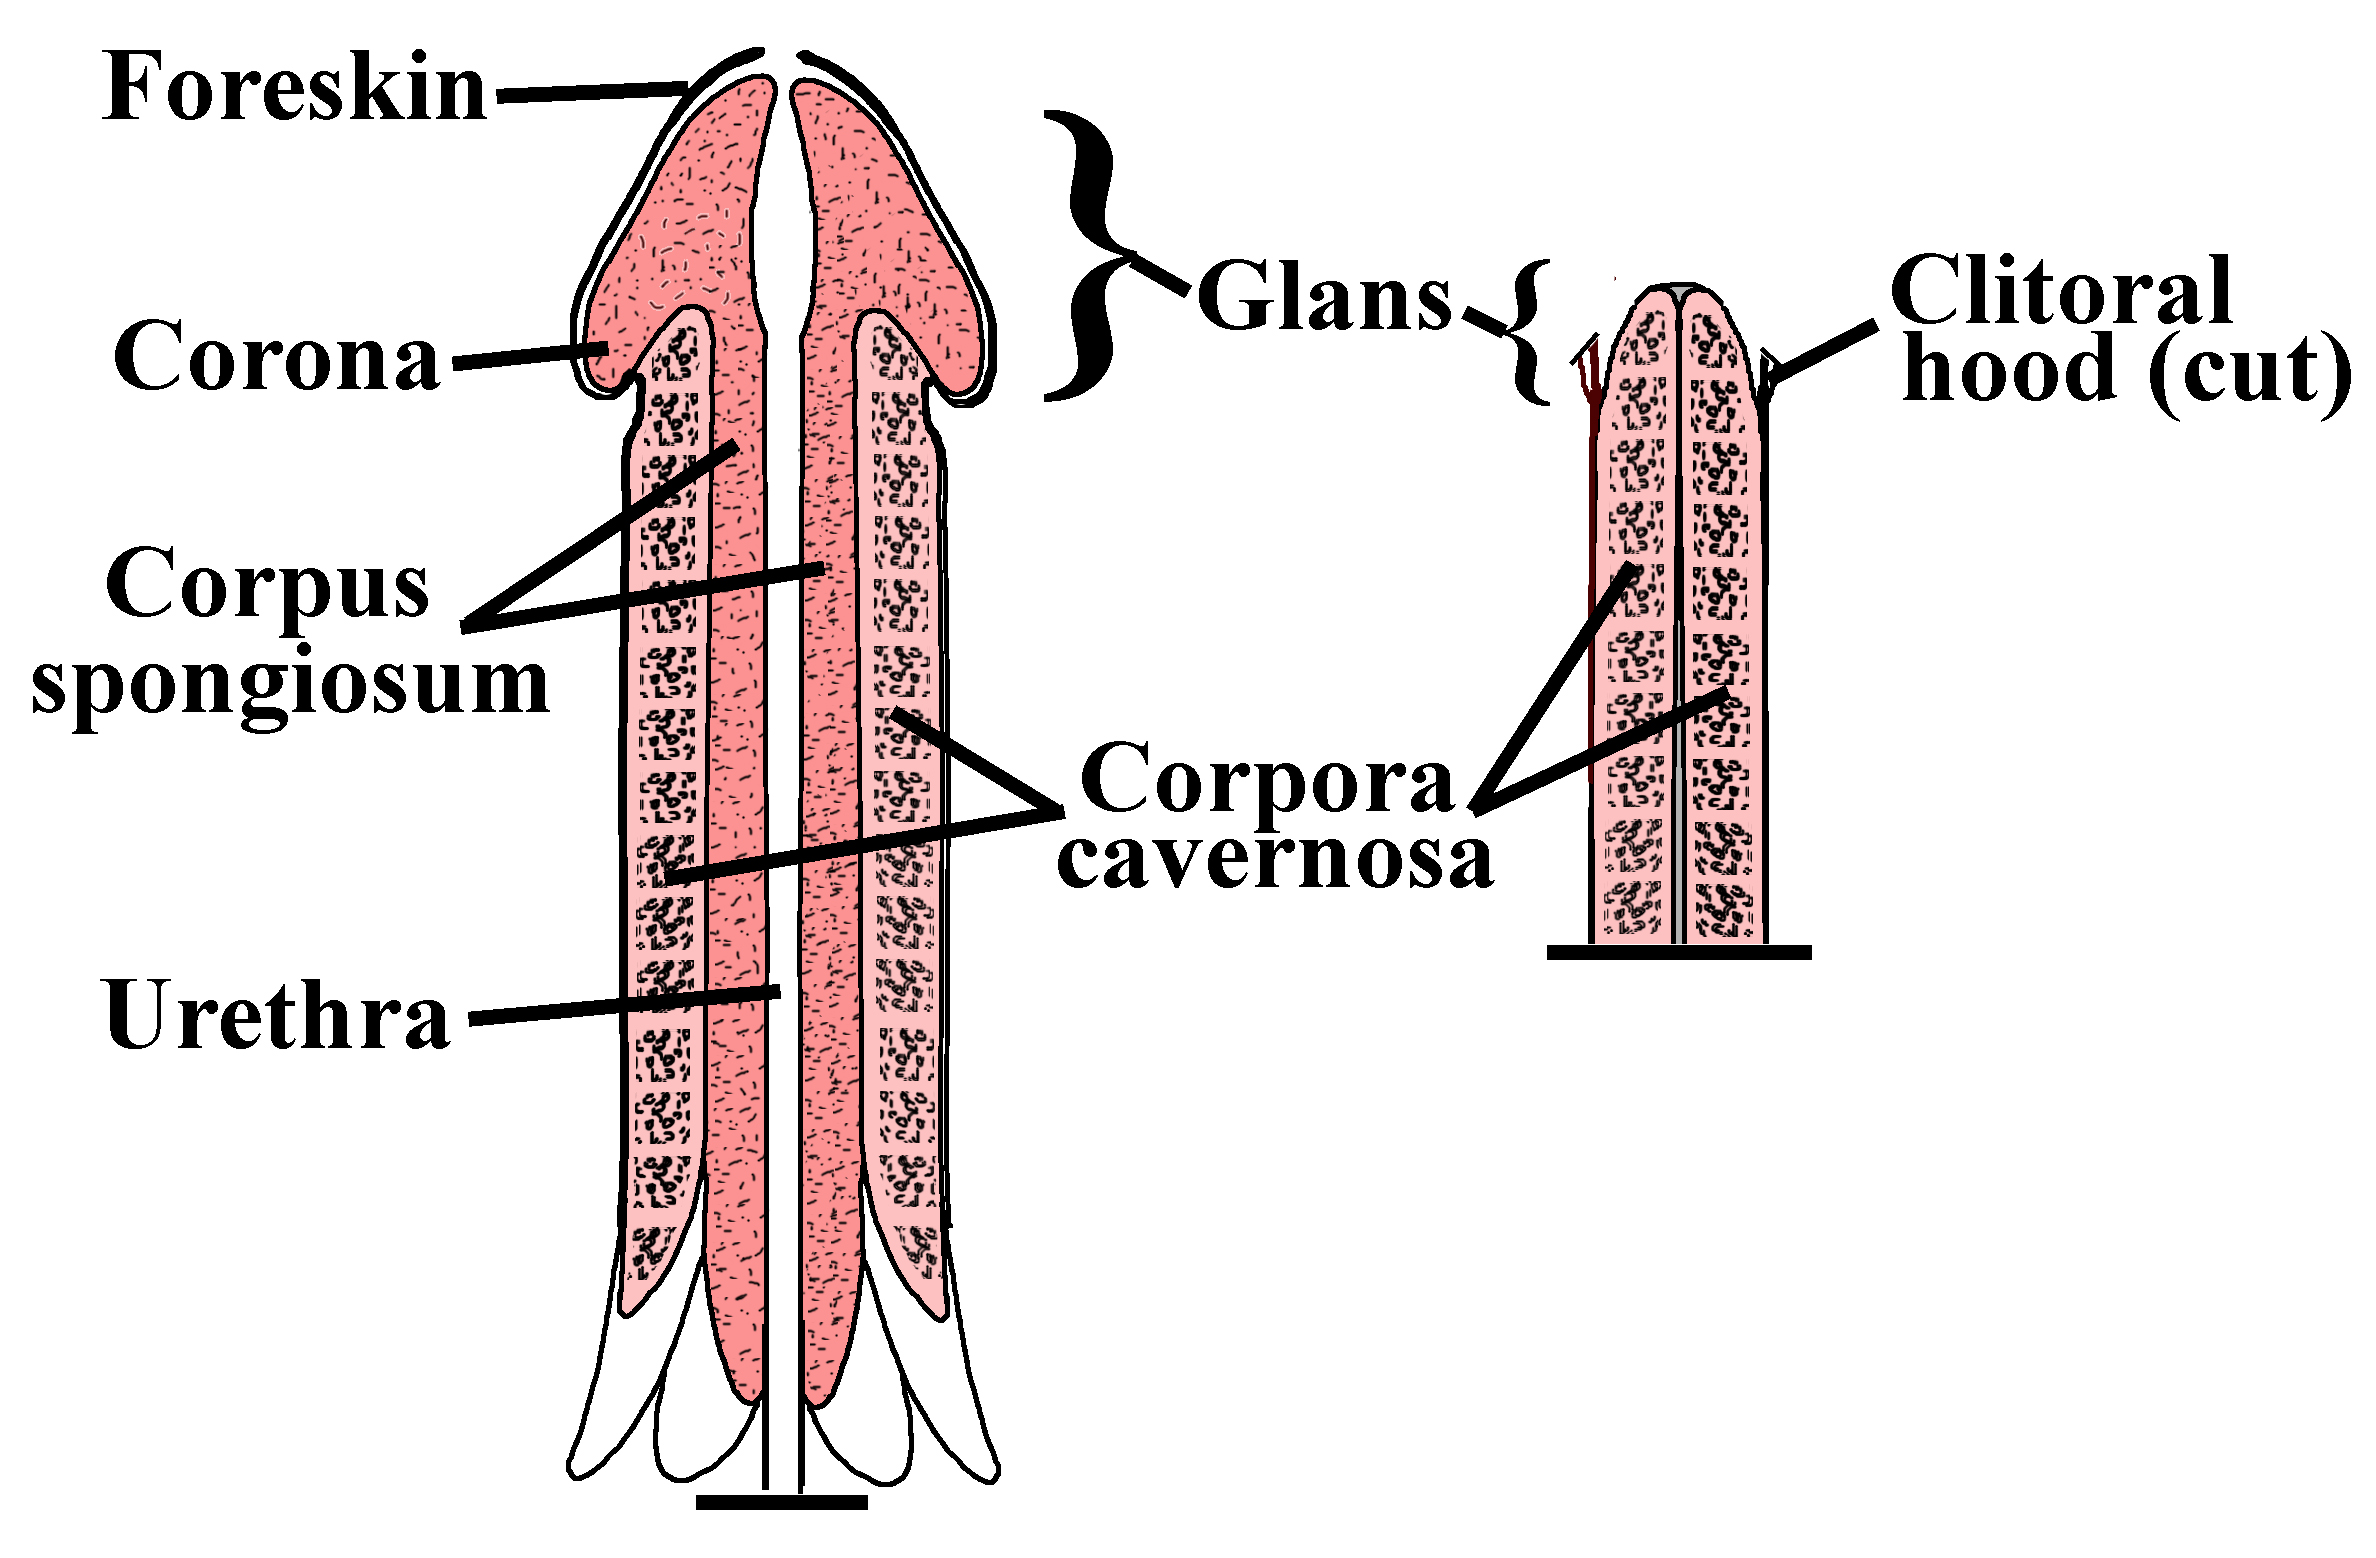 Located at:  http://upload.wikimedia.org/wikipedia/commons/4/44/Penile-Clitoral_Structure.JPG.